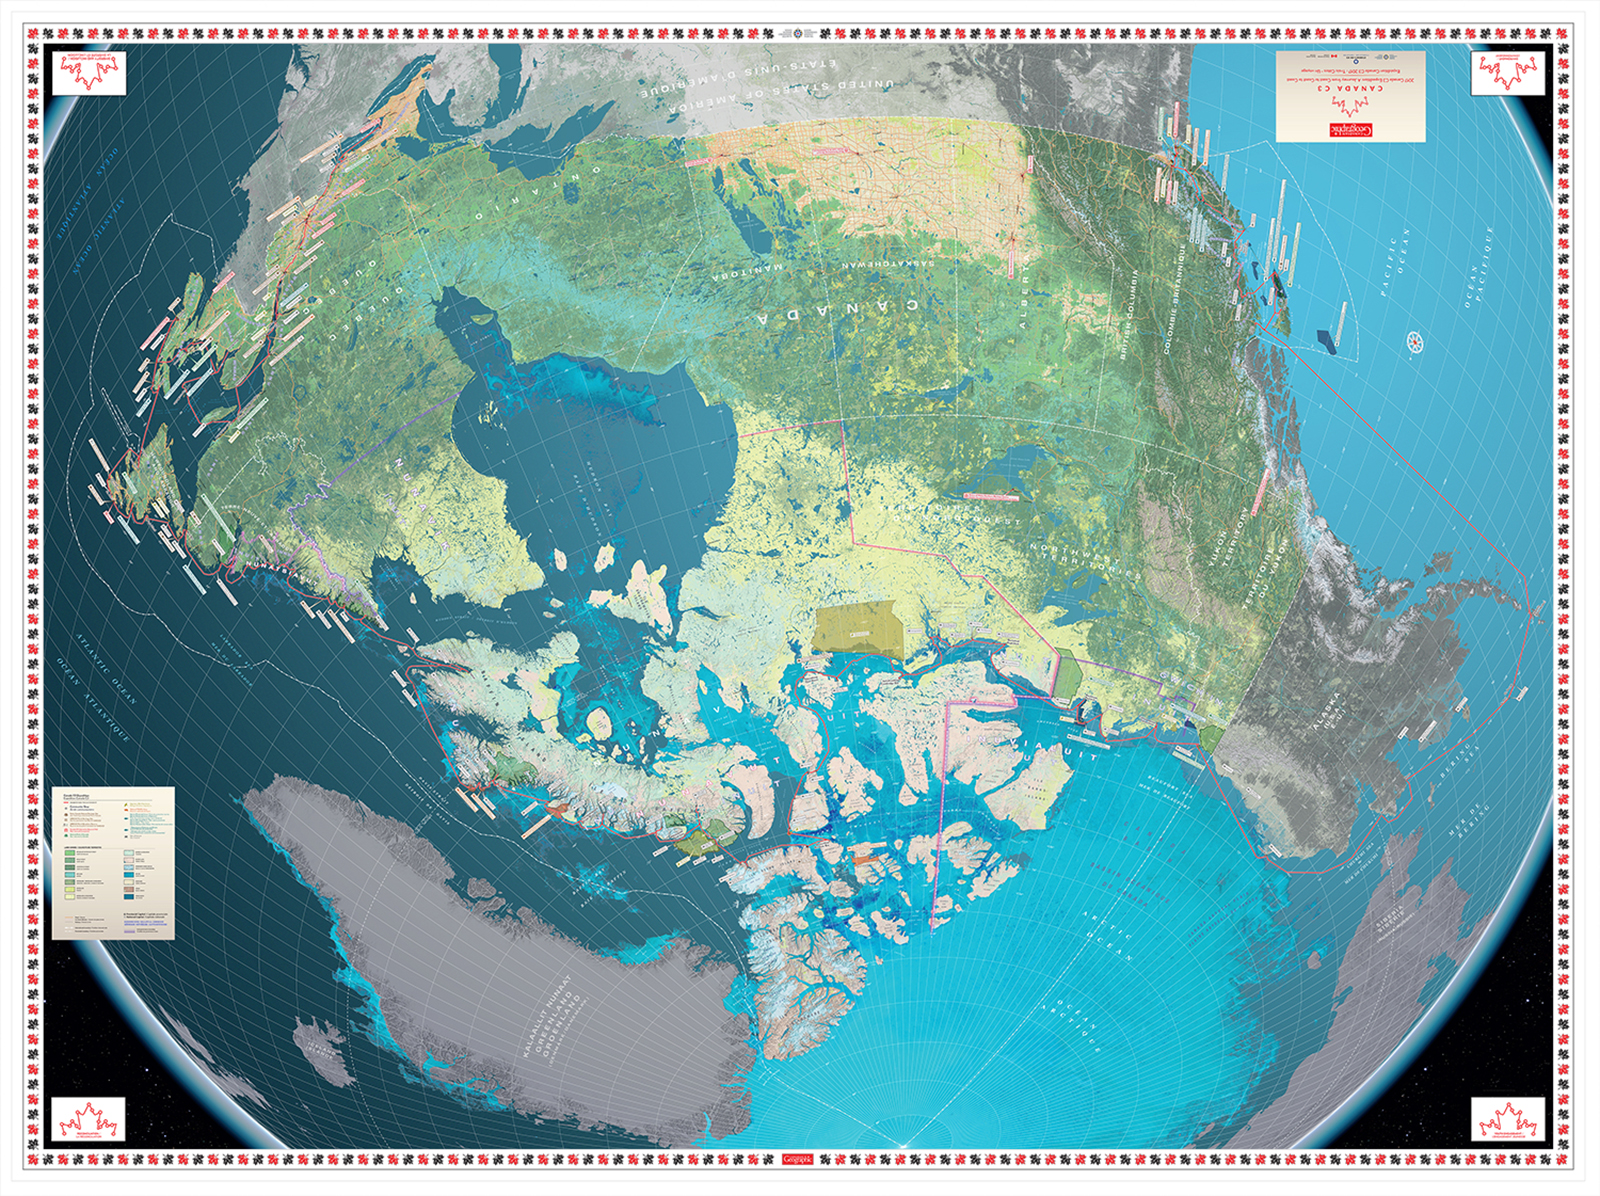 Canada C3 expedition giant floor map by Chris Brackley